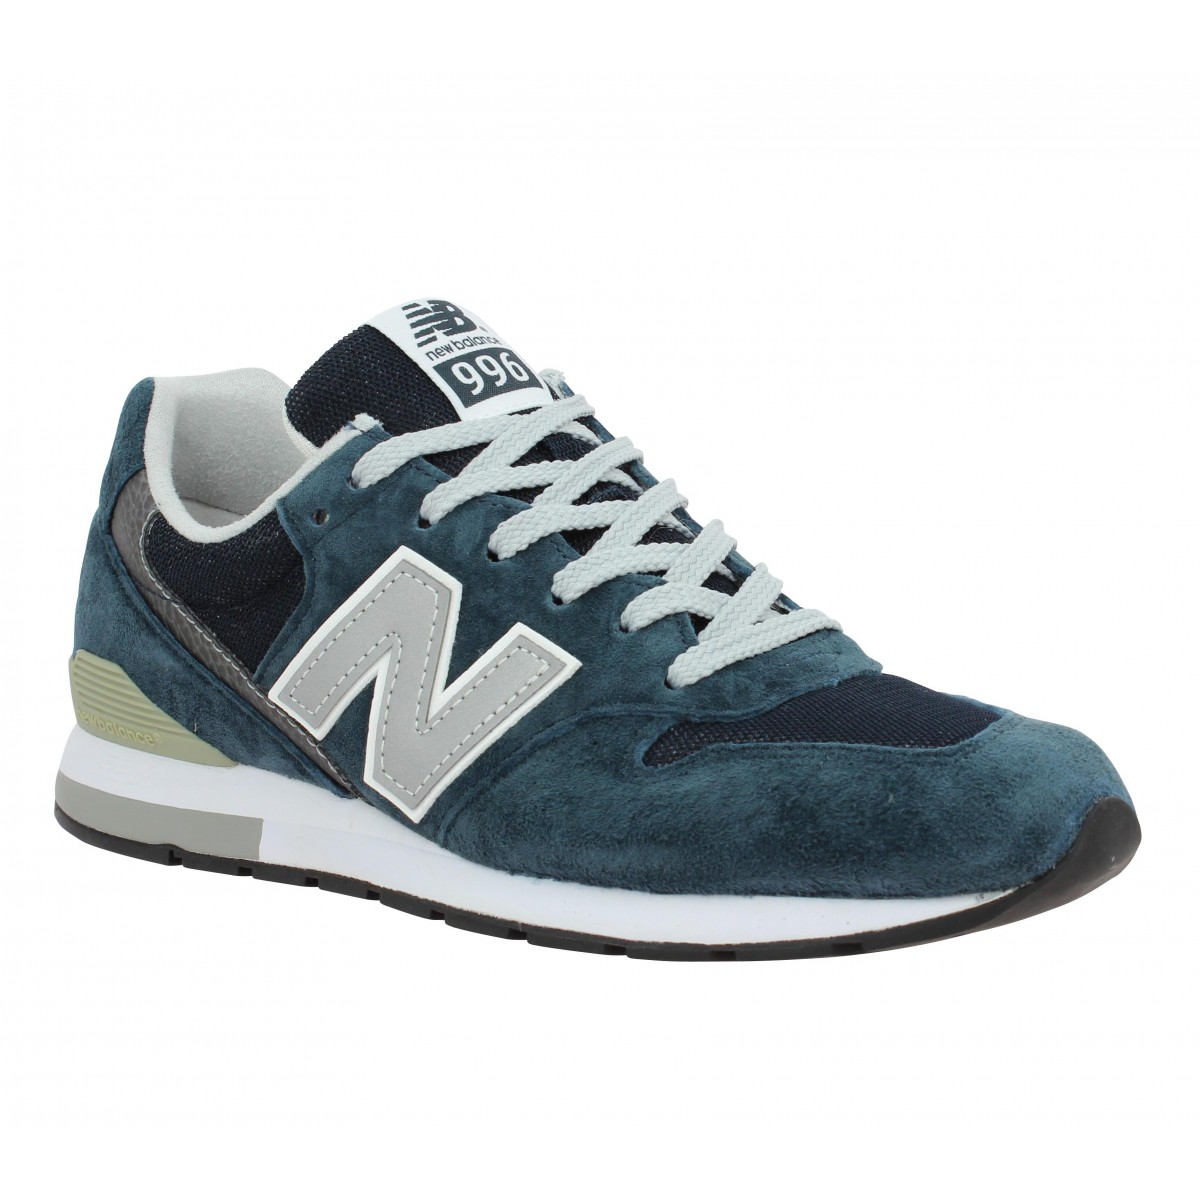 Baskets NEW BALANCE L996 velours + toile Homme Marine